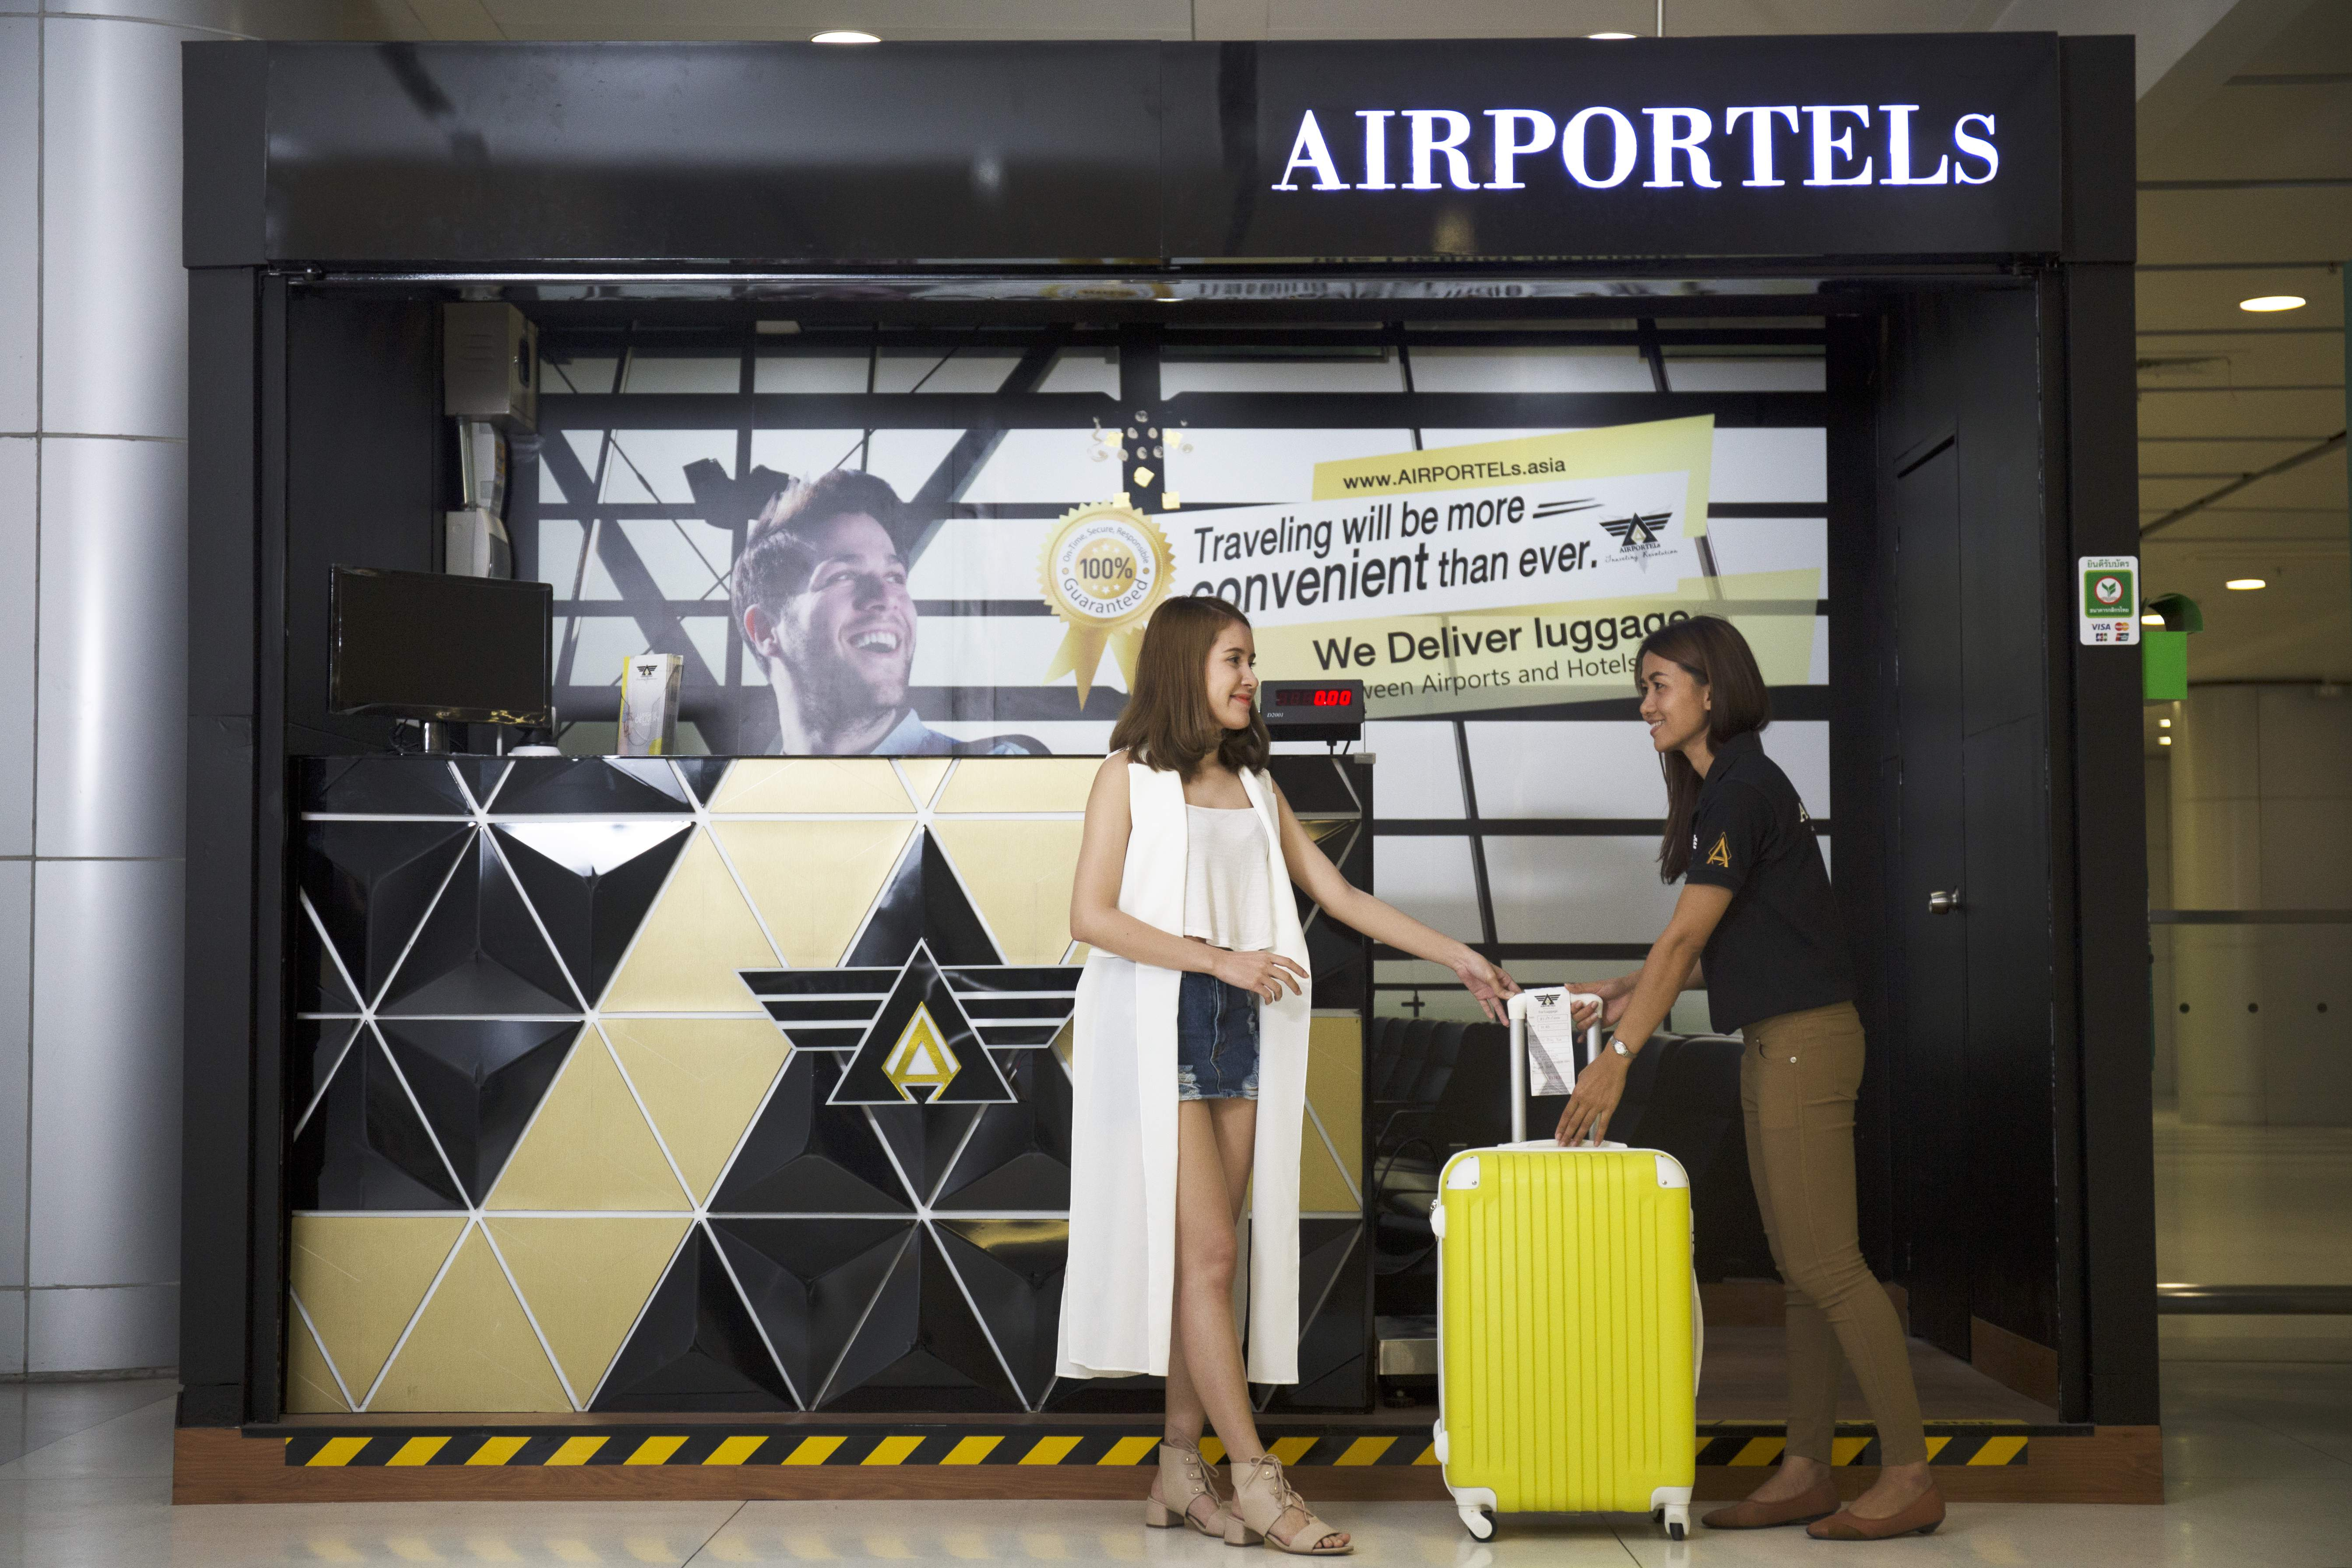 Receive luggage at the airport